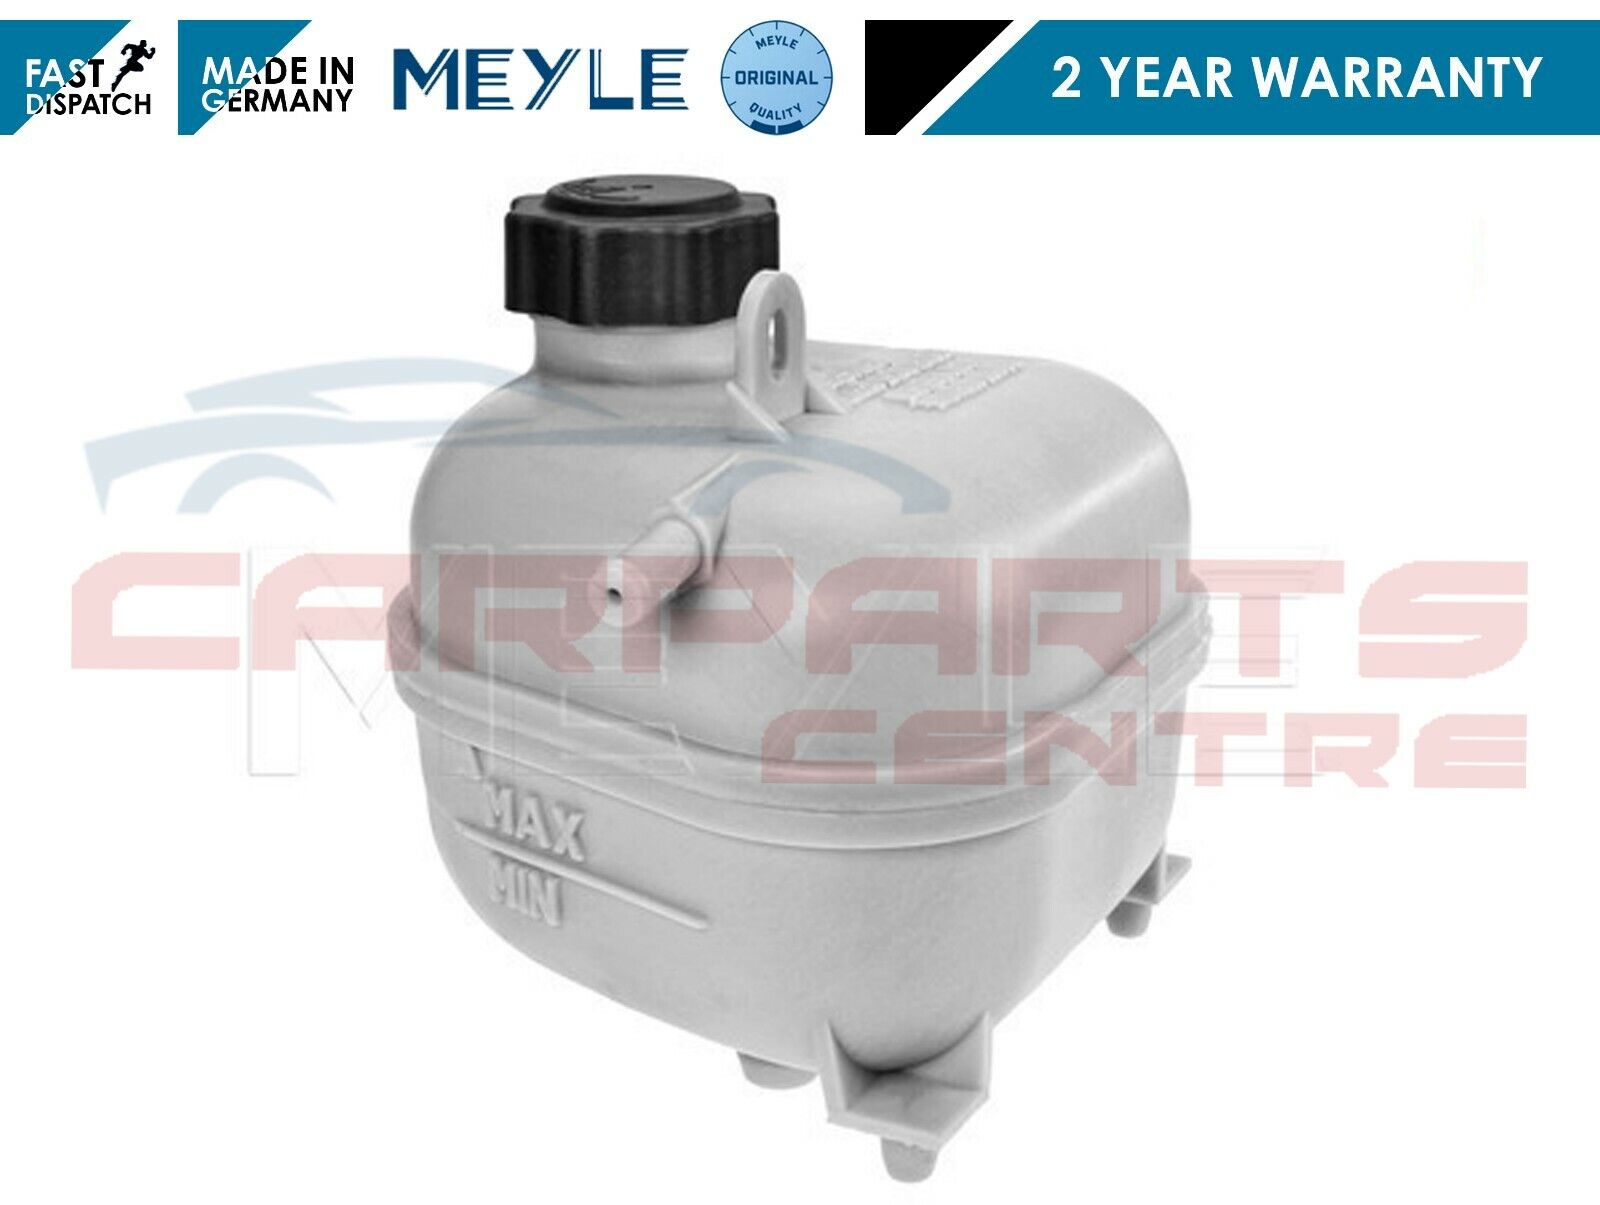 BMW MINI COOPER S COOLANT BOTTLE RESERVOIR TANK /& CAP R53 R52 2001-2006